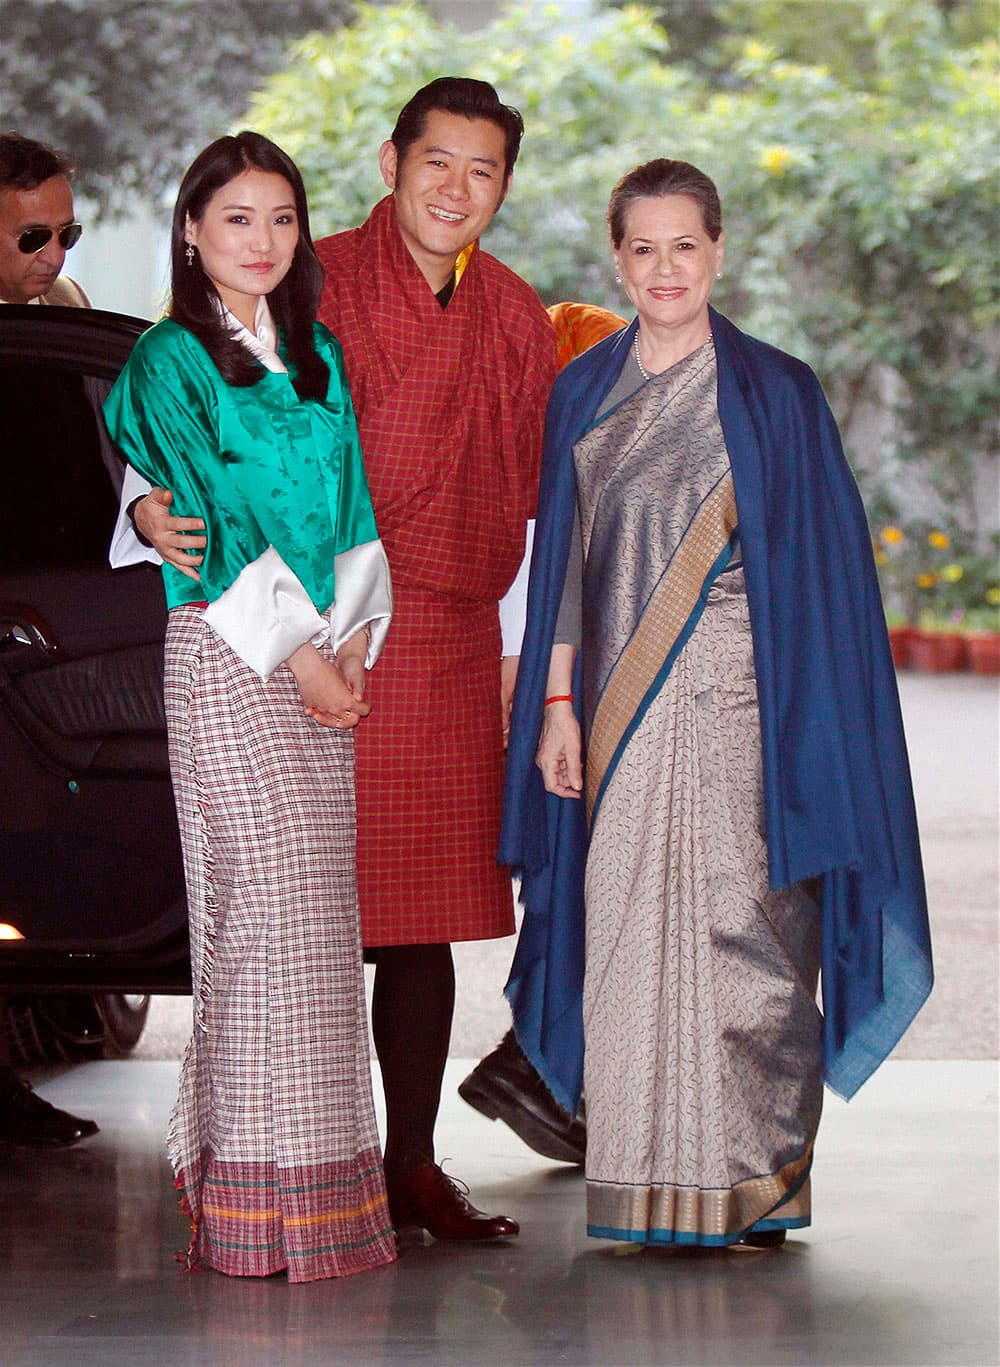 Congress President Sonia Gandhi with King of Bhutan Jigme Khesar Namgyel Wangchuck and the Queen Jetsun Pema Wangchuck, before their meeting at her residence in New Delhi.